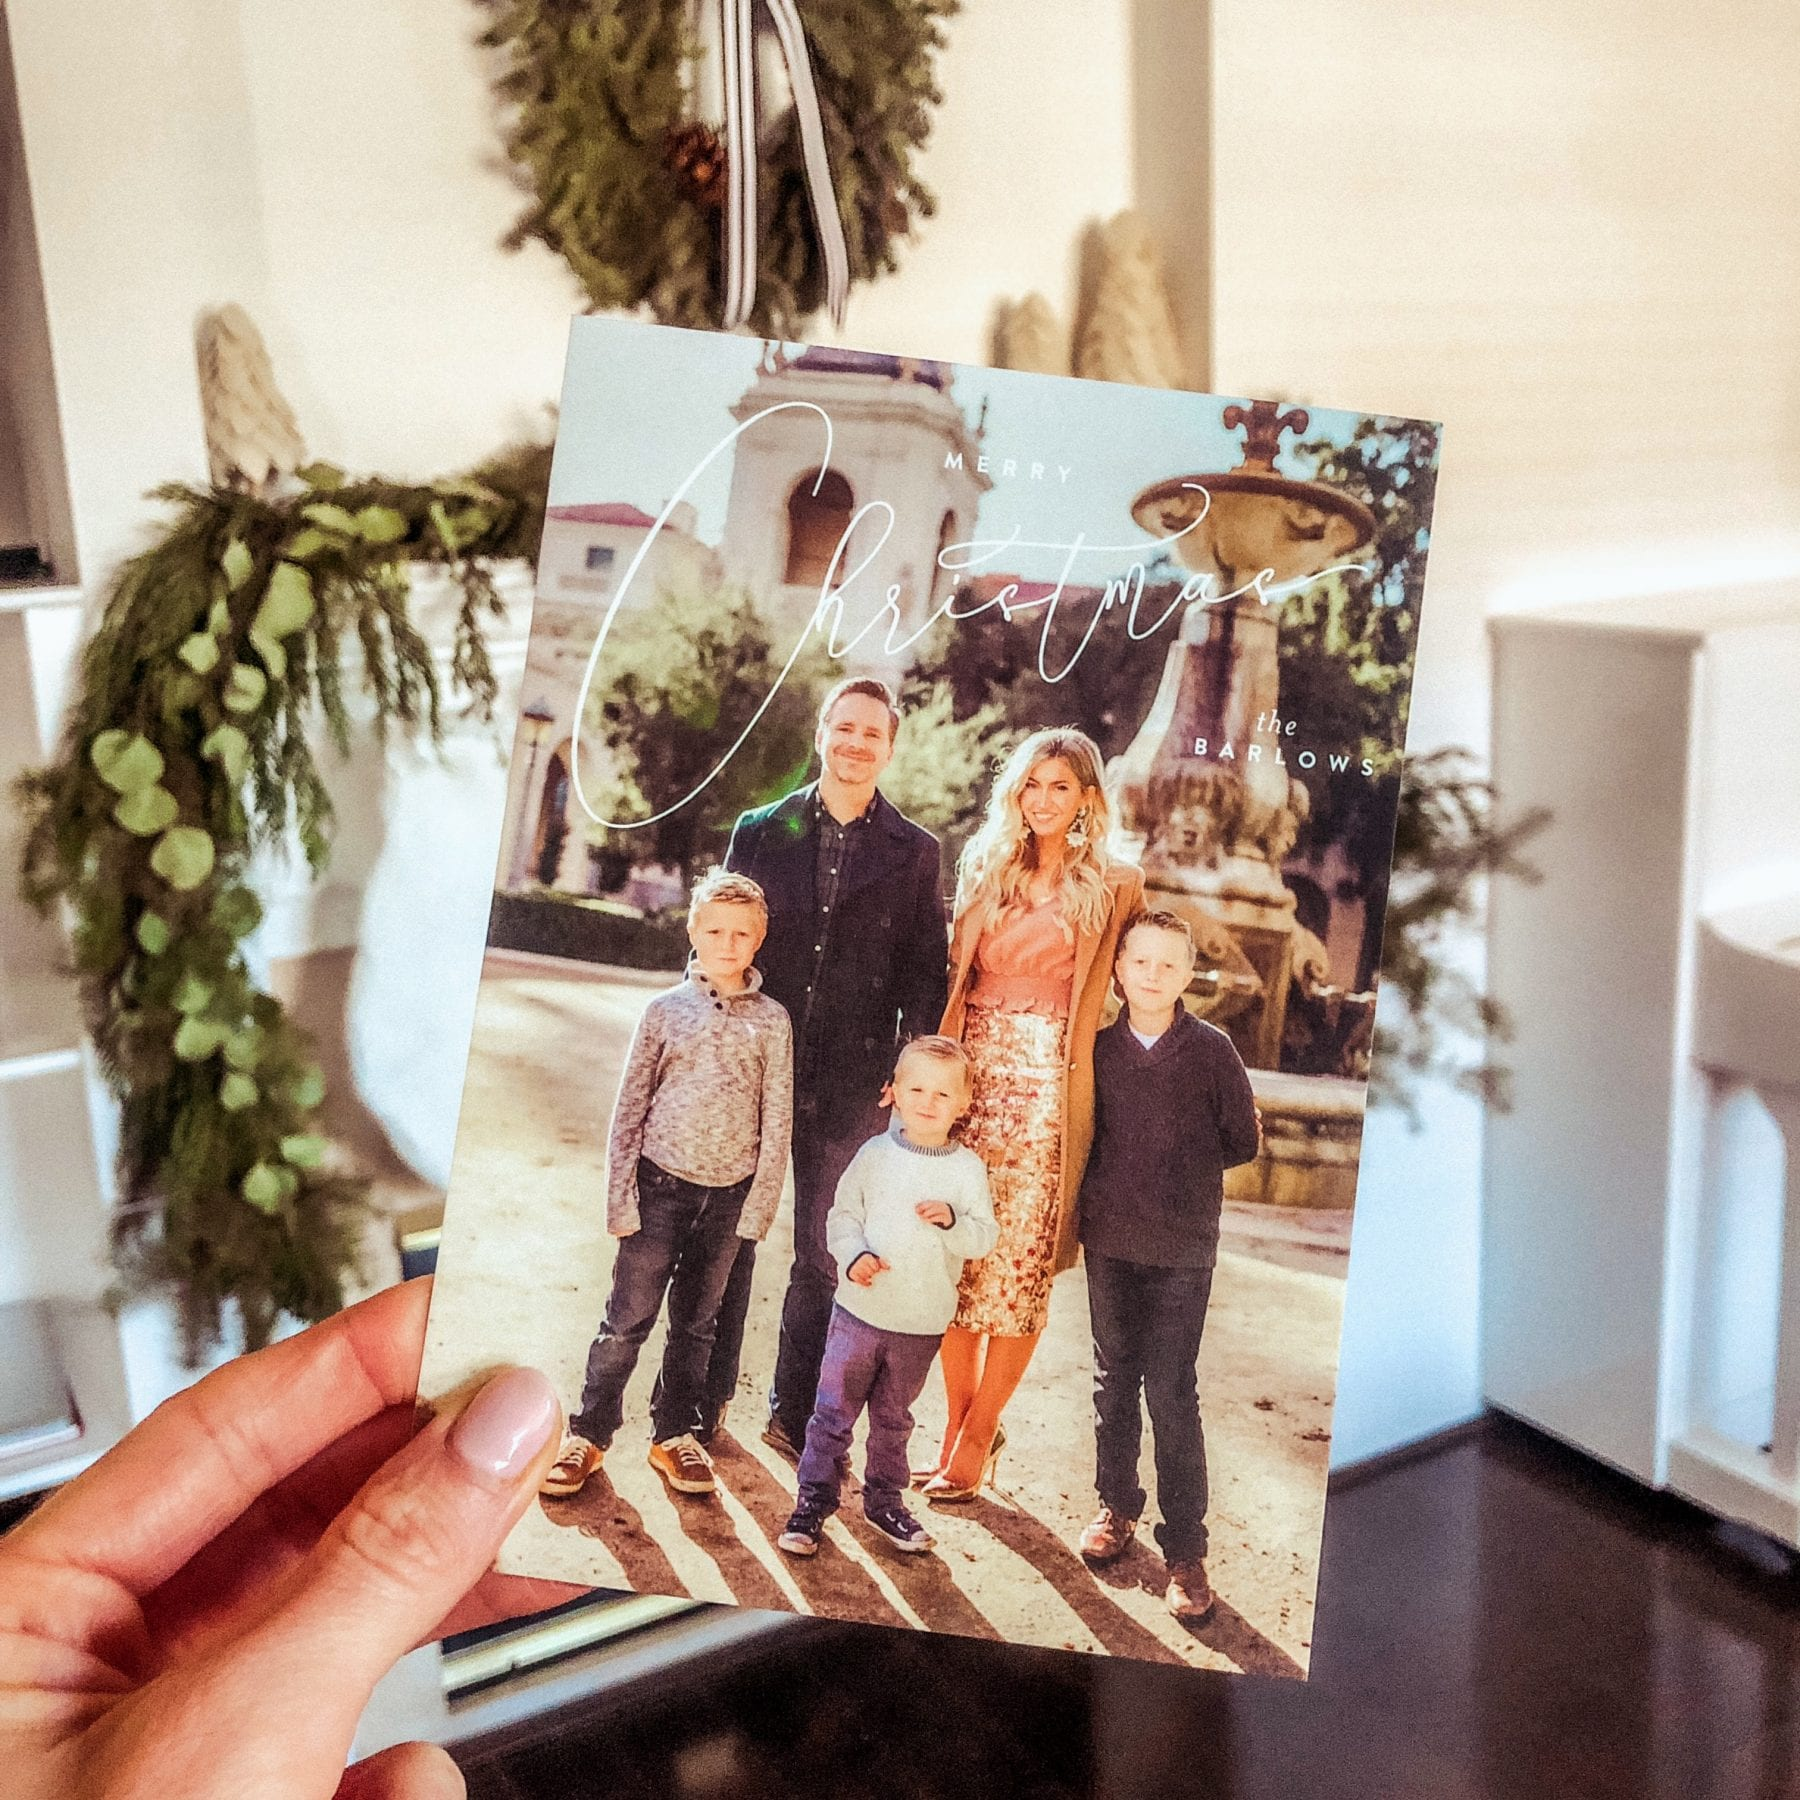 Barlow family Christmas cards 2018 - cards via Minted